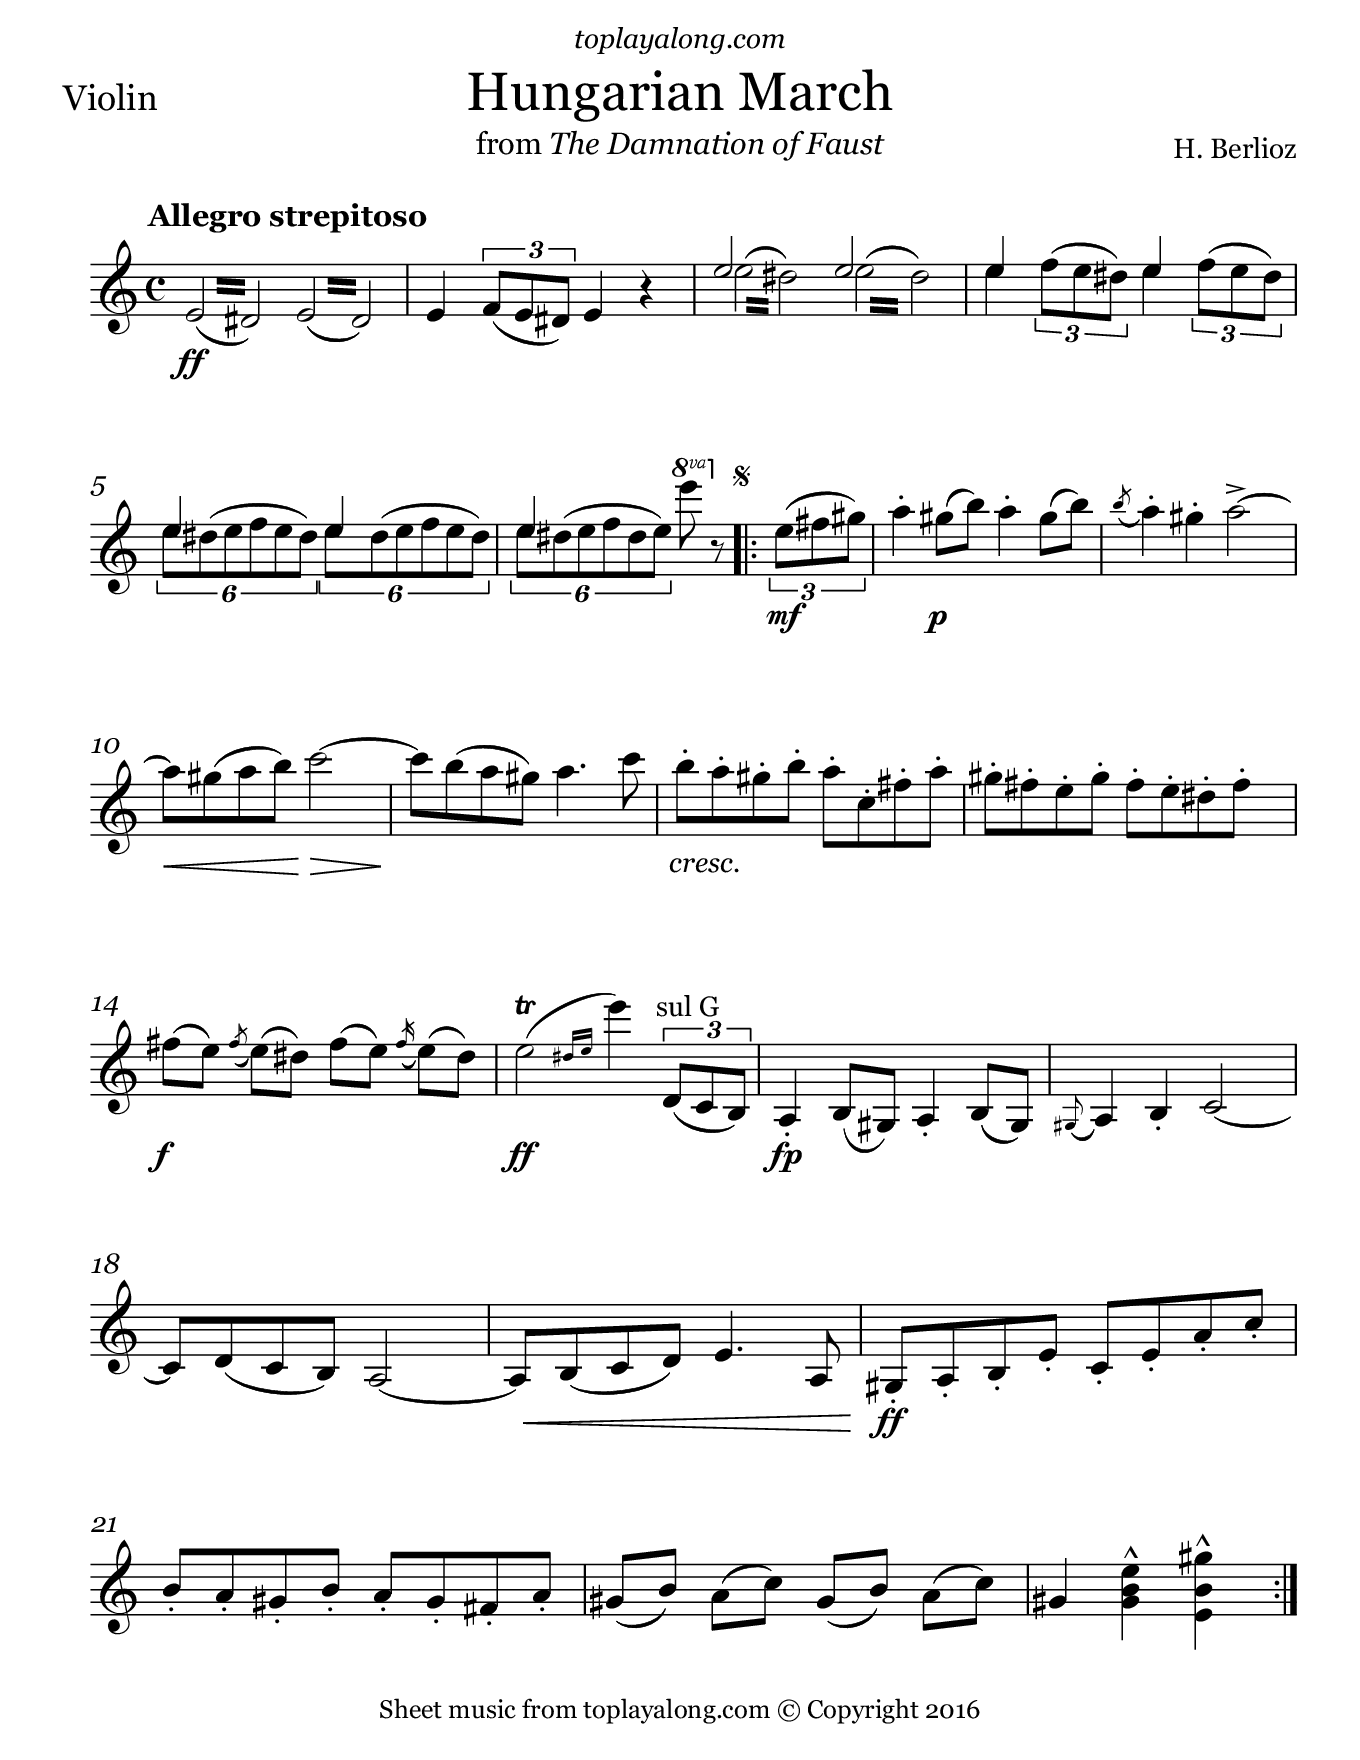 Hungarian March from Faust by Berlioz. Sheet music for Violin, page 1.